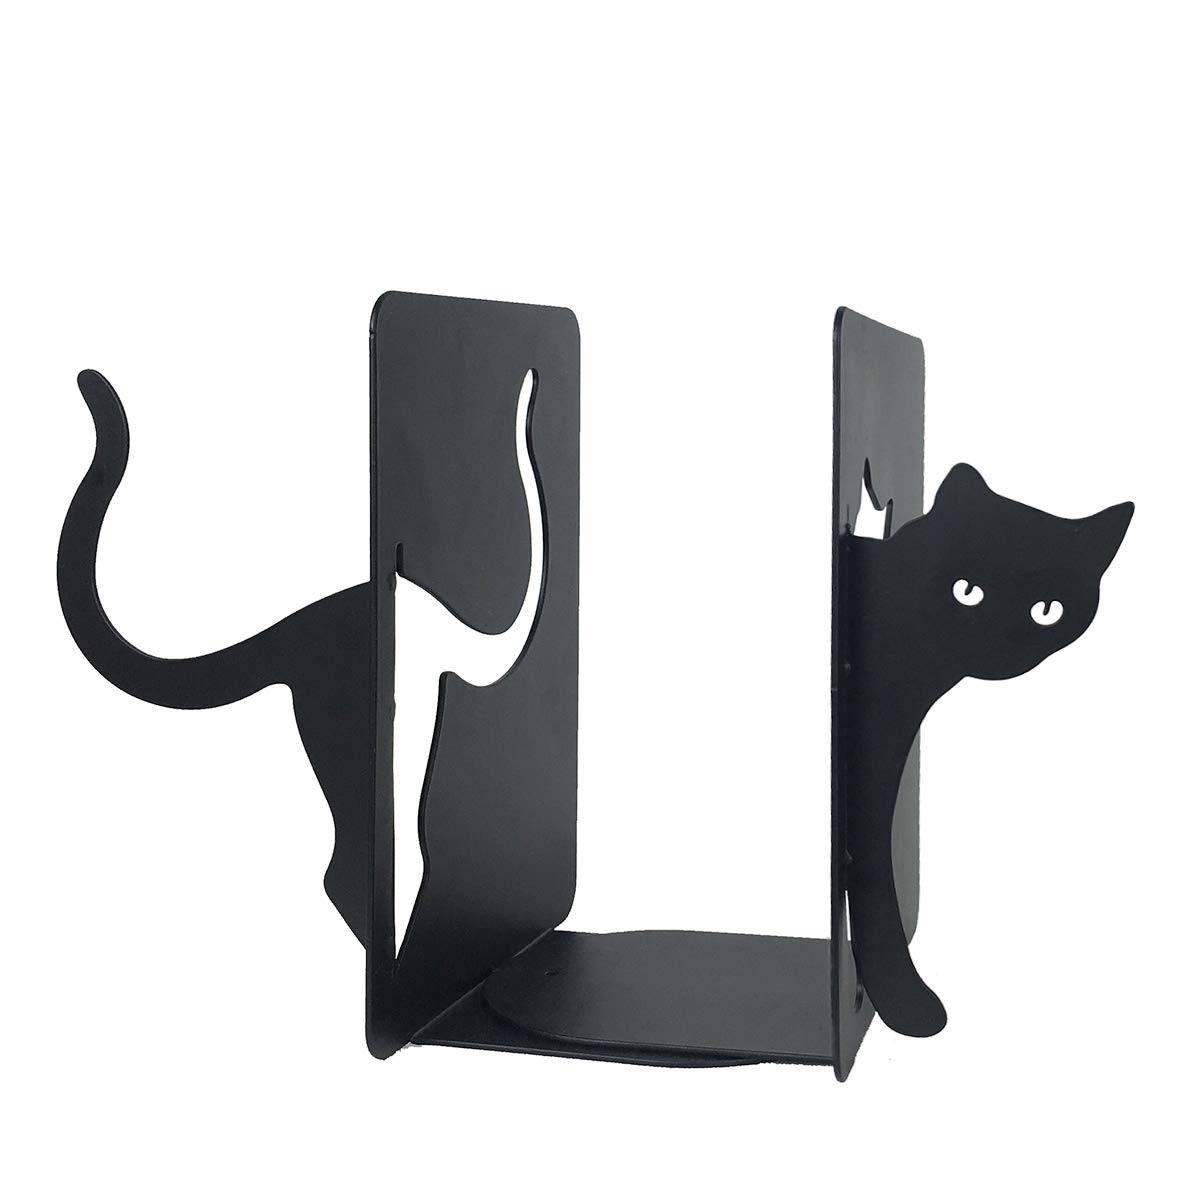 PandS Black Cat Iron Non Slip Bookends. Great for Office Home School Stationary Kids Ideal Gift Birthdays Holidays. Organize Books Magazines DVD by PandS